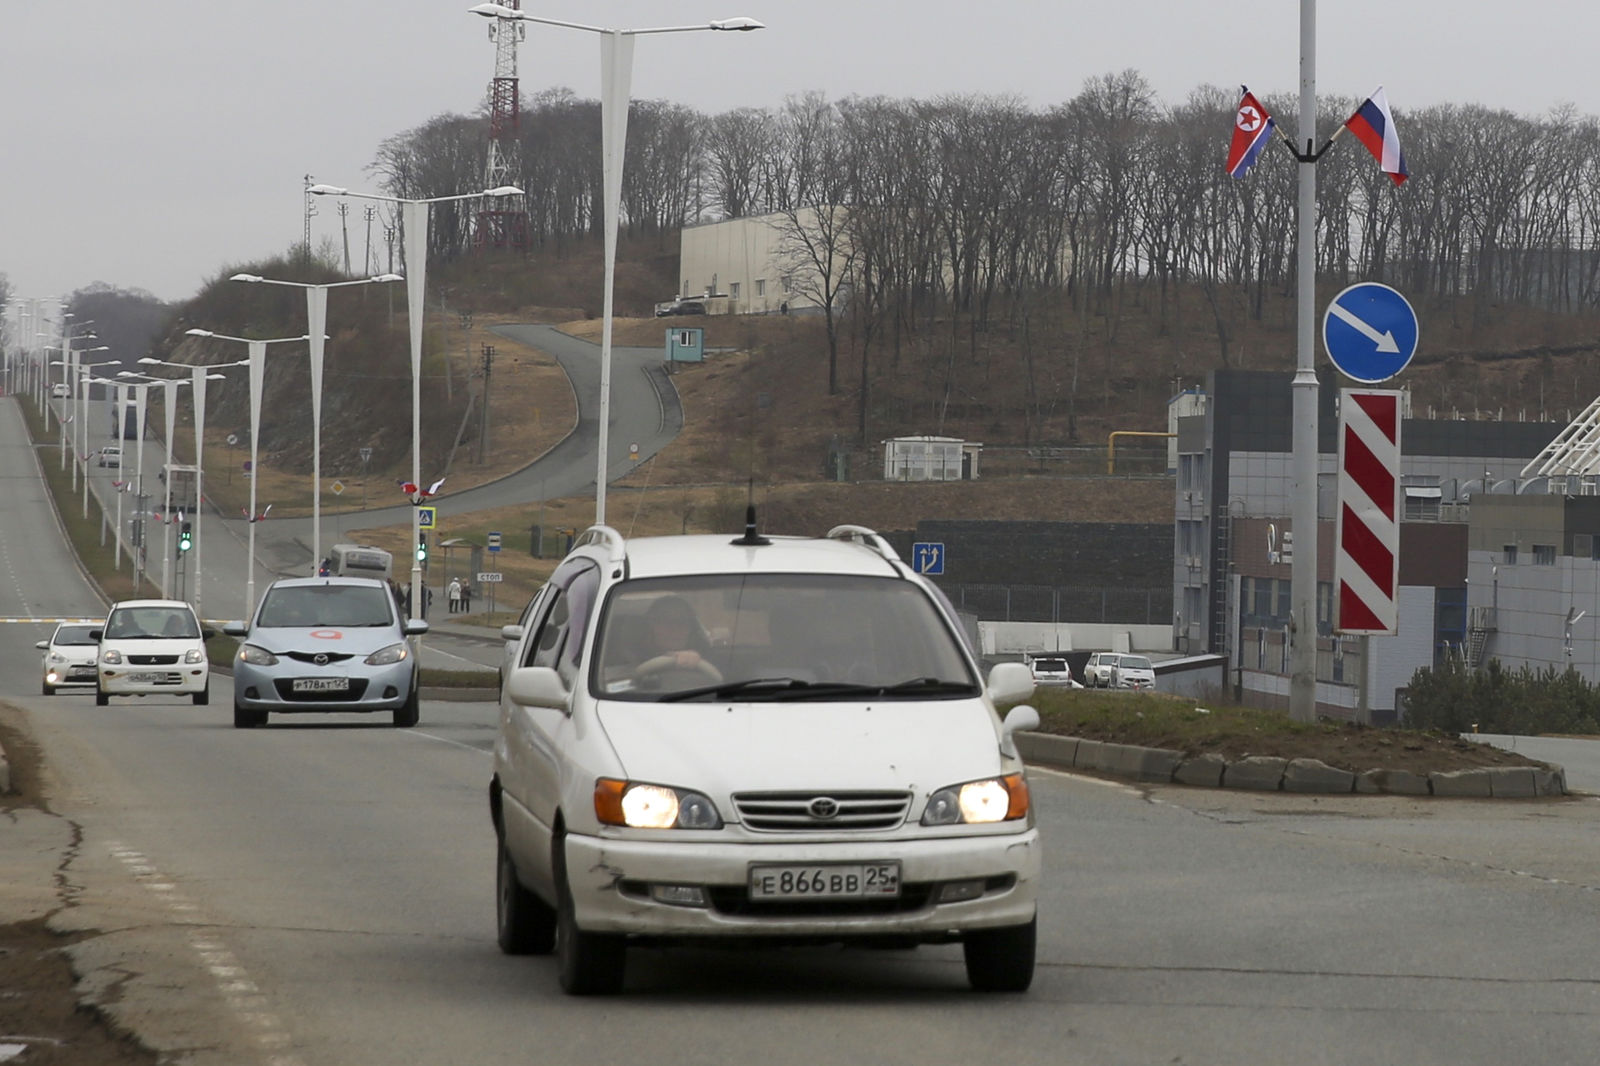 Flags of Russia and North Korea are seen along the road on Russky Island, in Vladivostok, Russia, Tuesday, April 23, 2019. Russian President Vladimir Putin will meet with North Korean leader Kim Jong Un for a much-anticipated summit on Thursday April 25, a Kremlin adviser said, putting an end to weeks of speculation about when and where it would take place. (AP Photo/Mari Borodina)